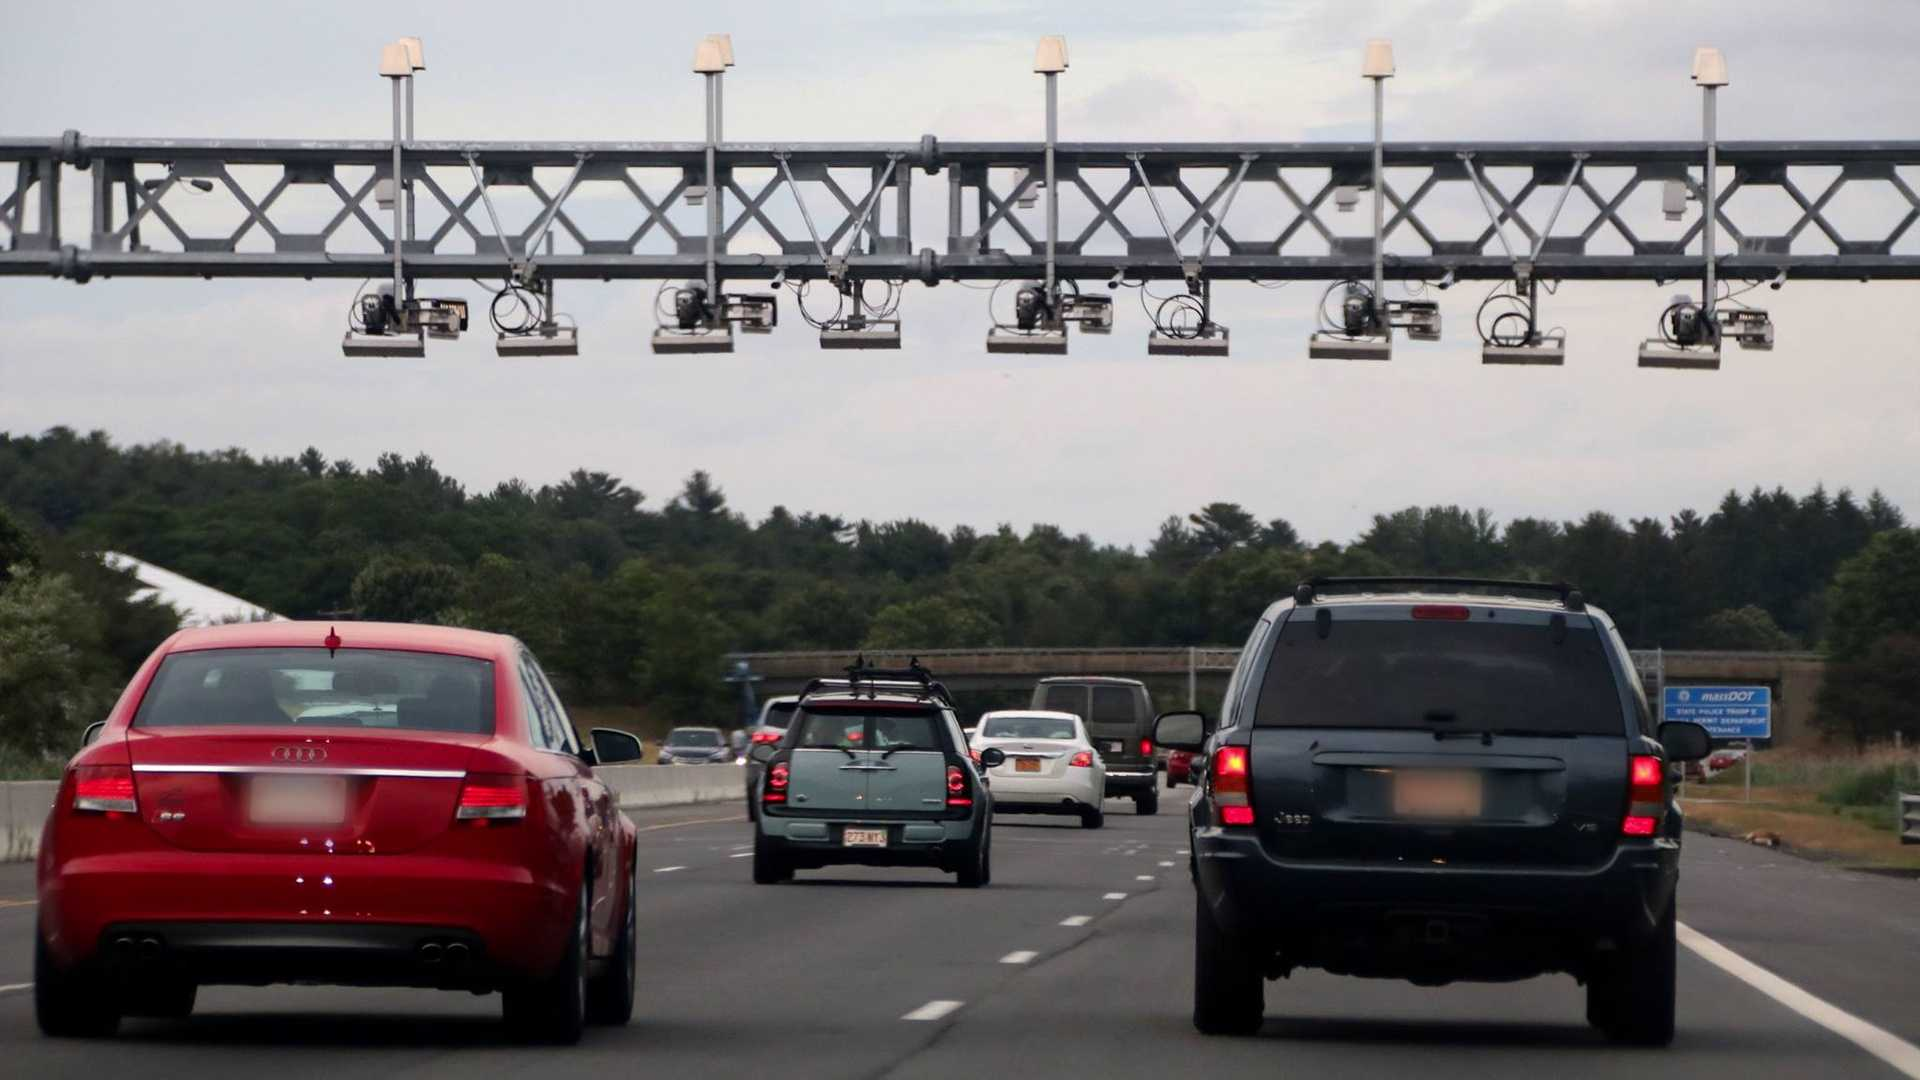 Sensors like these will charge your E-ZPass or take a picture of your vehicle's plate and mail a bill to where the car is registered.   Prices for tolls will now depend on how you pay the tolls -- and what state your E-ZPass is from.